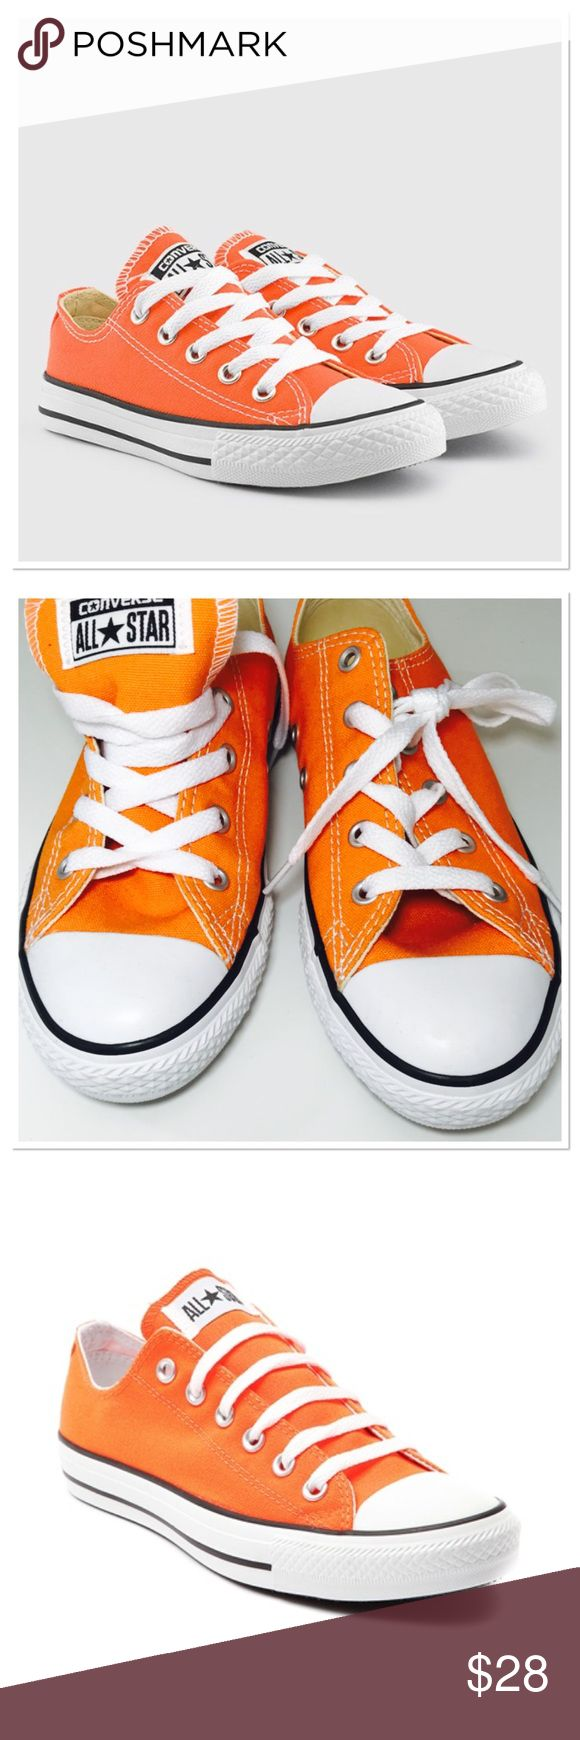 NIB Kids Converse So cute for boy or girl. Never worn ! Size 1.5  I have only the bottom of the box and that one is a little damage. The shoes are in mint condition. Converse Shoes Sneakers